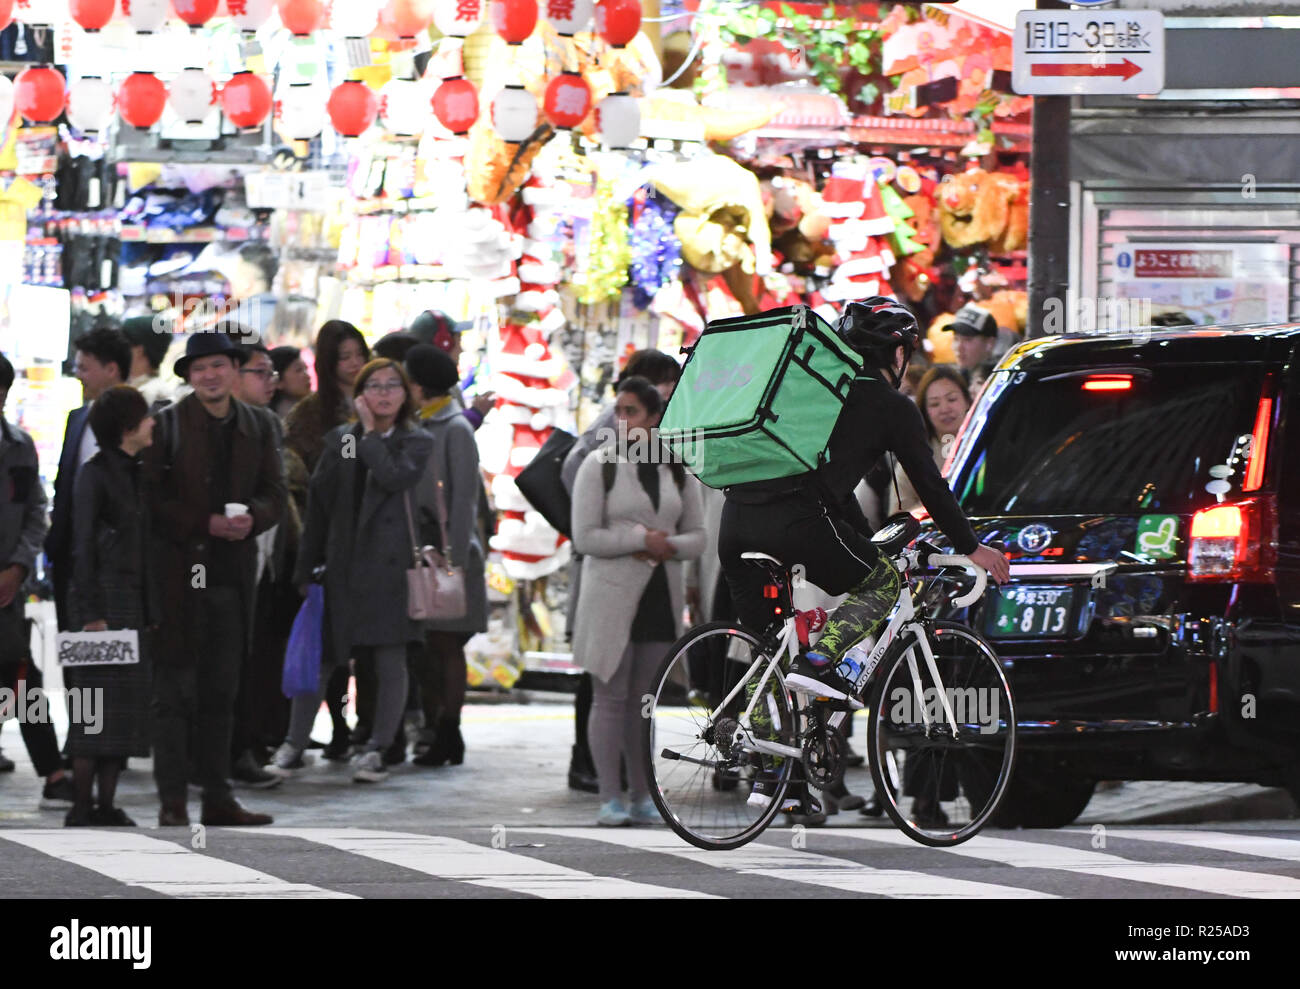 tokyo delivery bike photos & tokyo delivery bike images - alamy